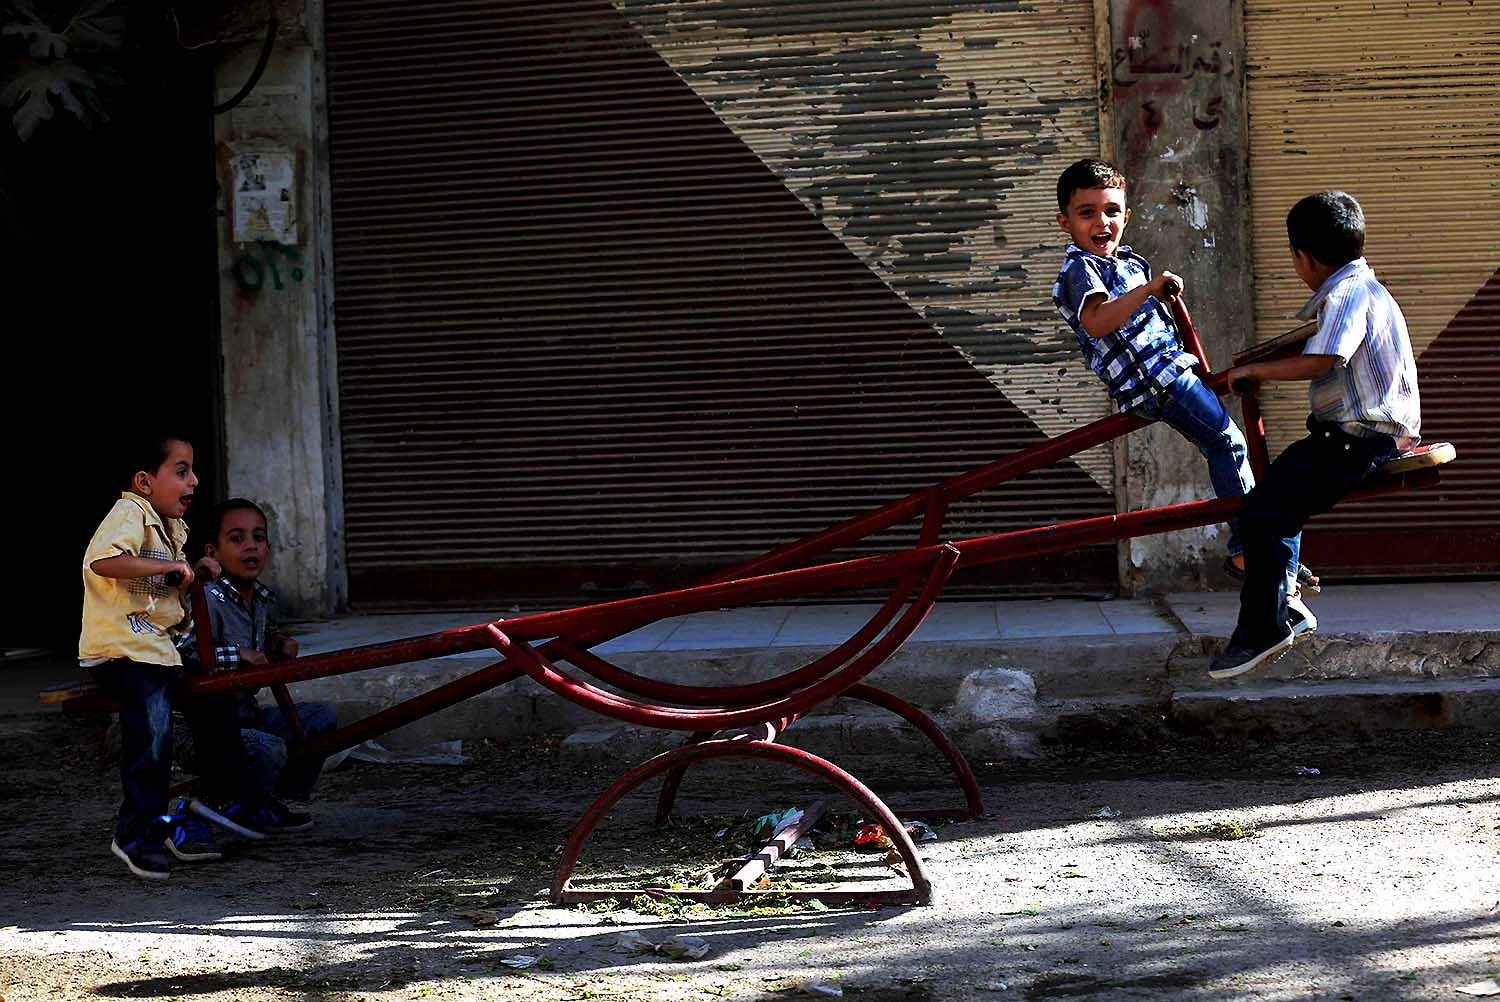 Boys play on a see-saw in Arbin. — AFP